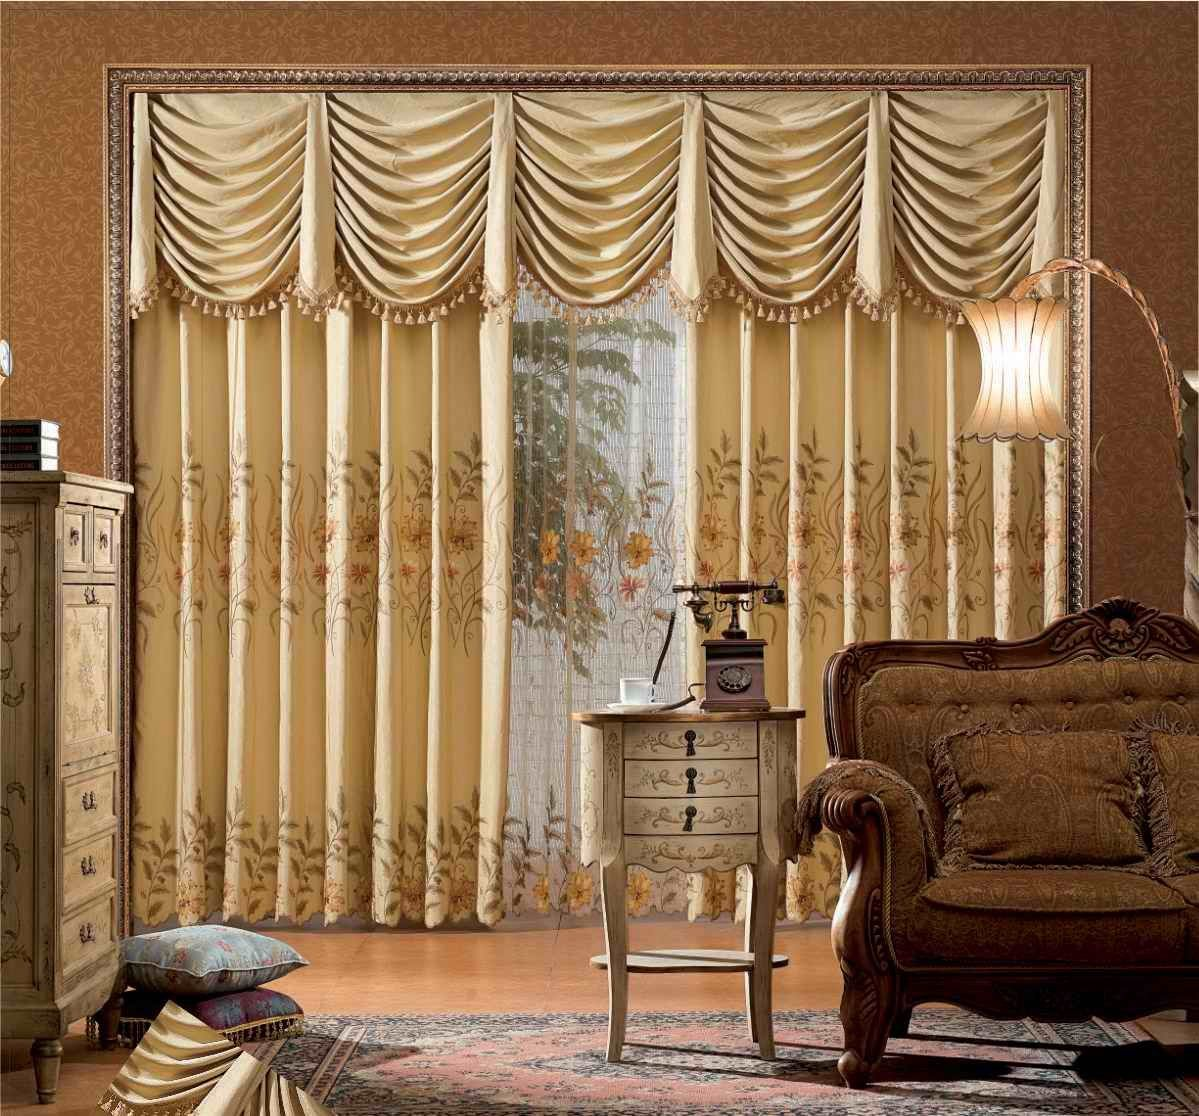 Living Room Curtains Designs Mesmerizing Make Modern Living Room Curtains  Httphighlifestylewp Review